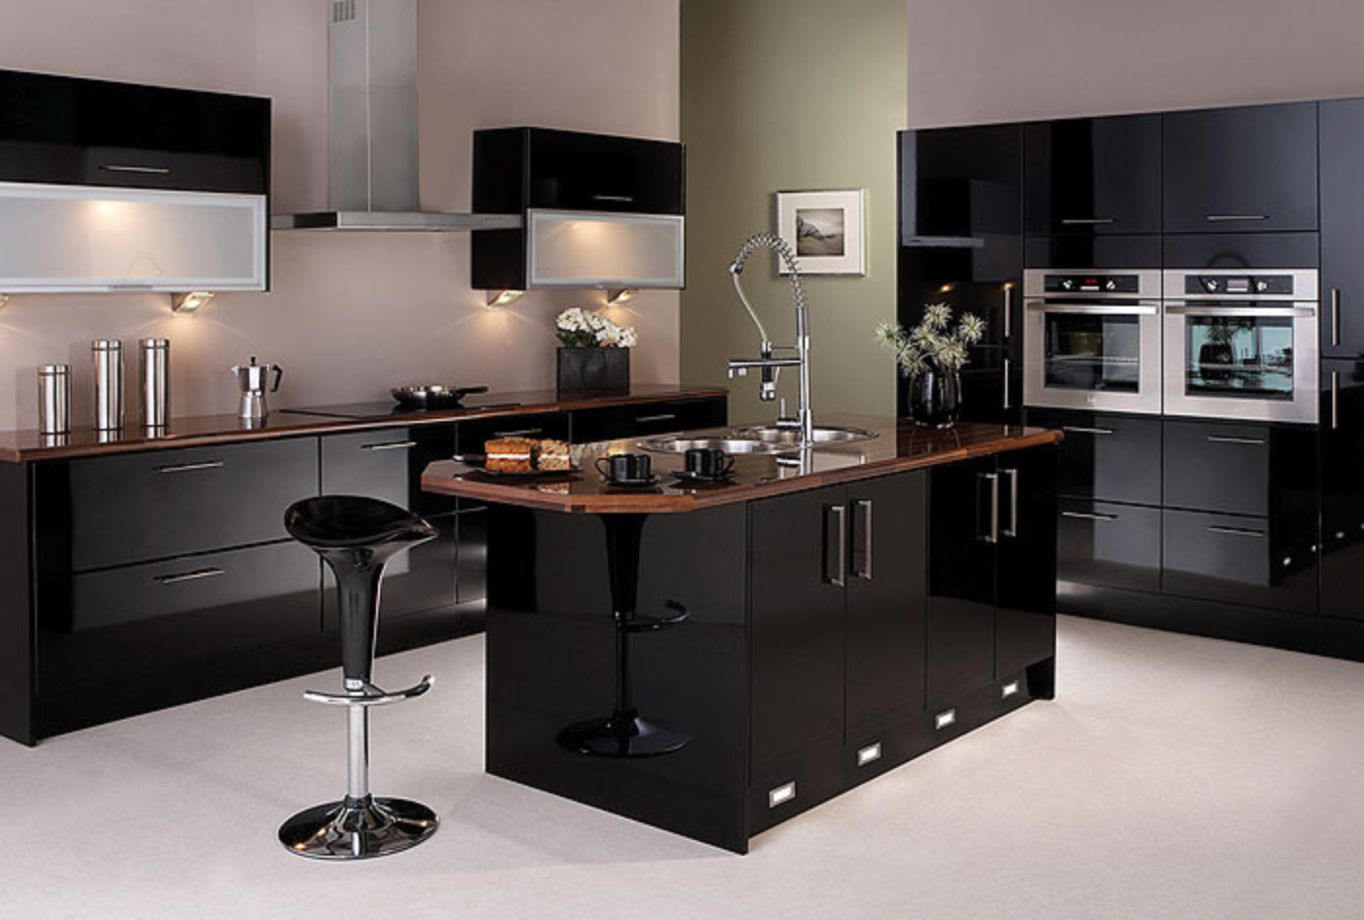 Cool-Contact-Paper-Kitchen-Cabinet-Doors-Ideas-to-Makes-Look-Expensive-01